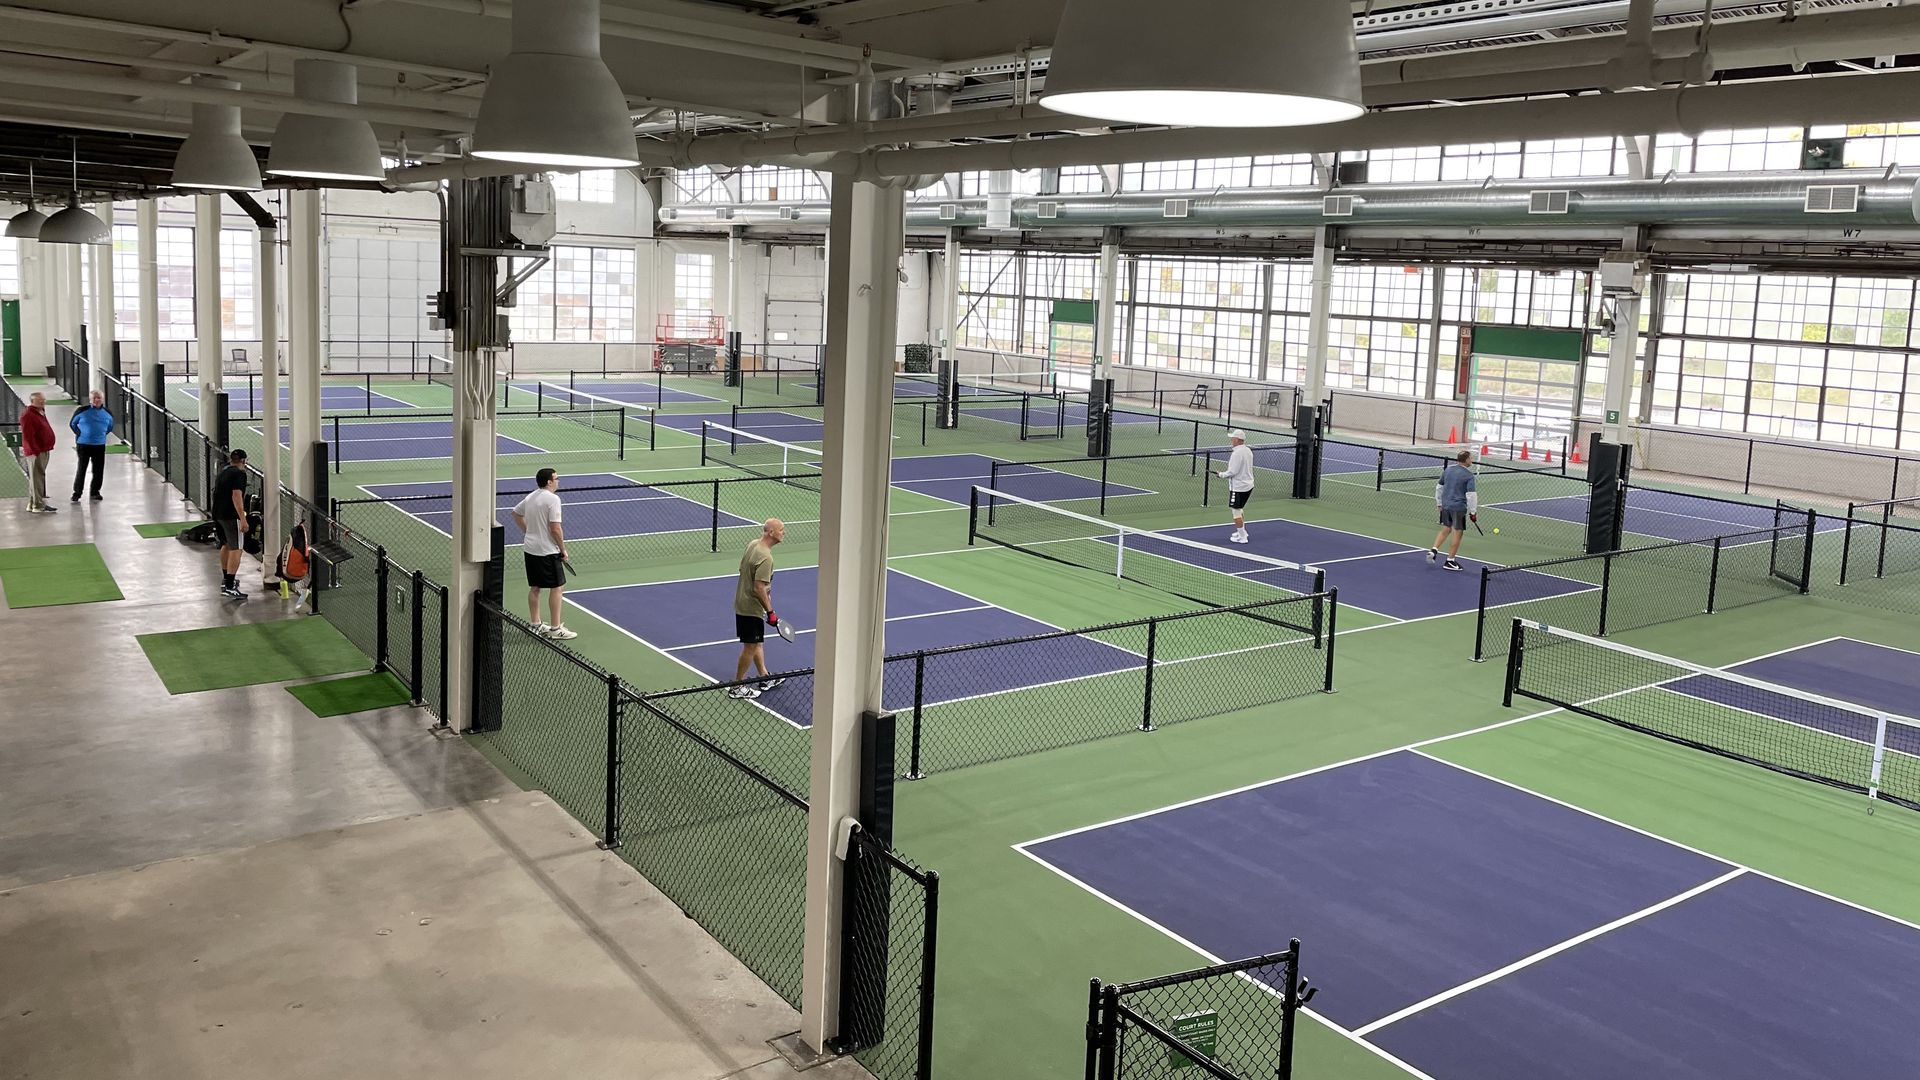 Groups of people play pickleball on pickleball courts